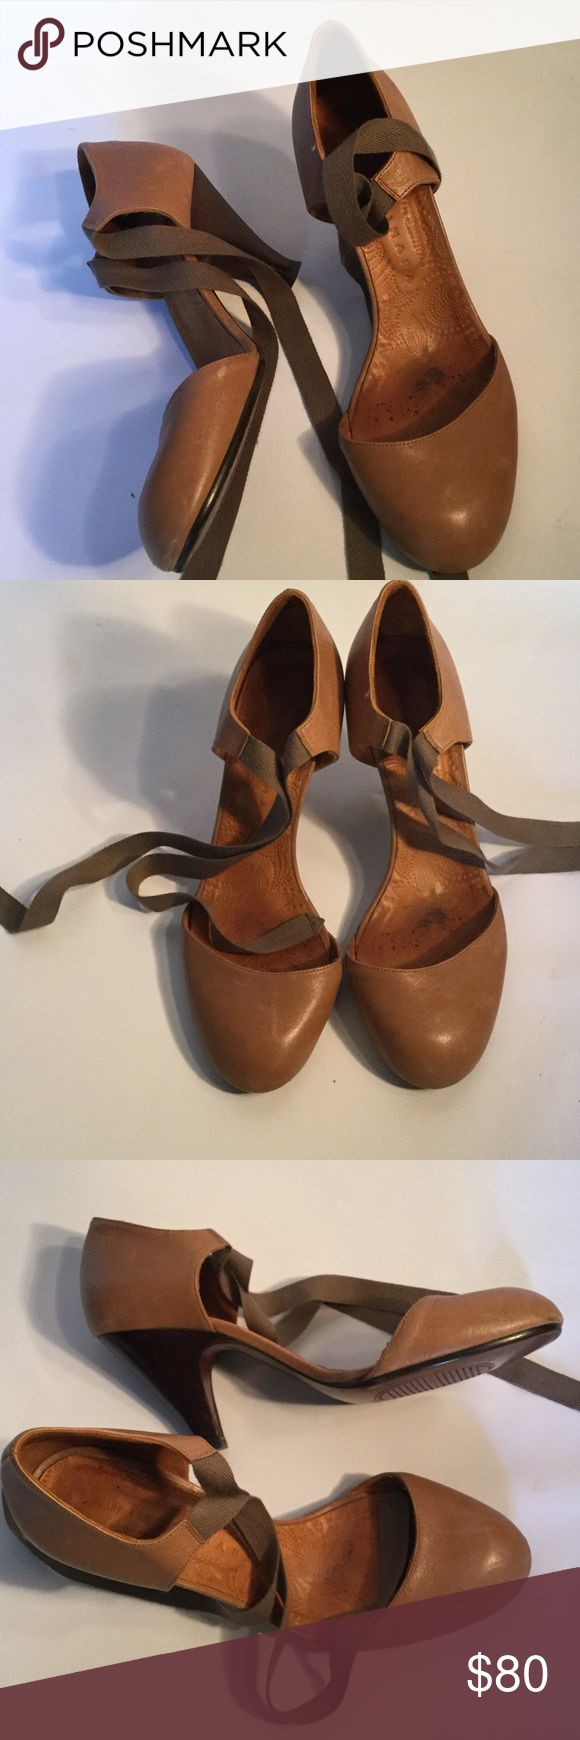 """Chie Mihara ankle tie shoes Tan leather heeled shoes with ankle strap from Chie Mihara. These are beautiful and comfortable. Heels measure 3.5"""".  Excellent preowned condition. Chie Mihara Shoes Heels"""